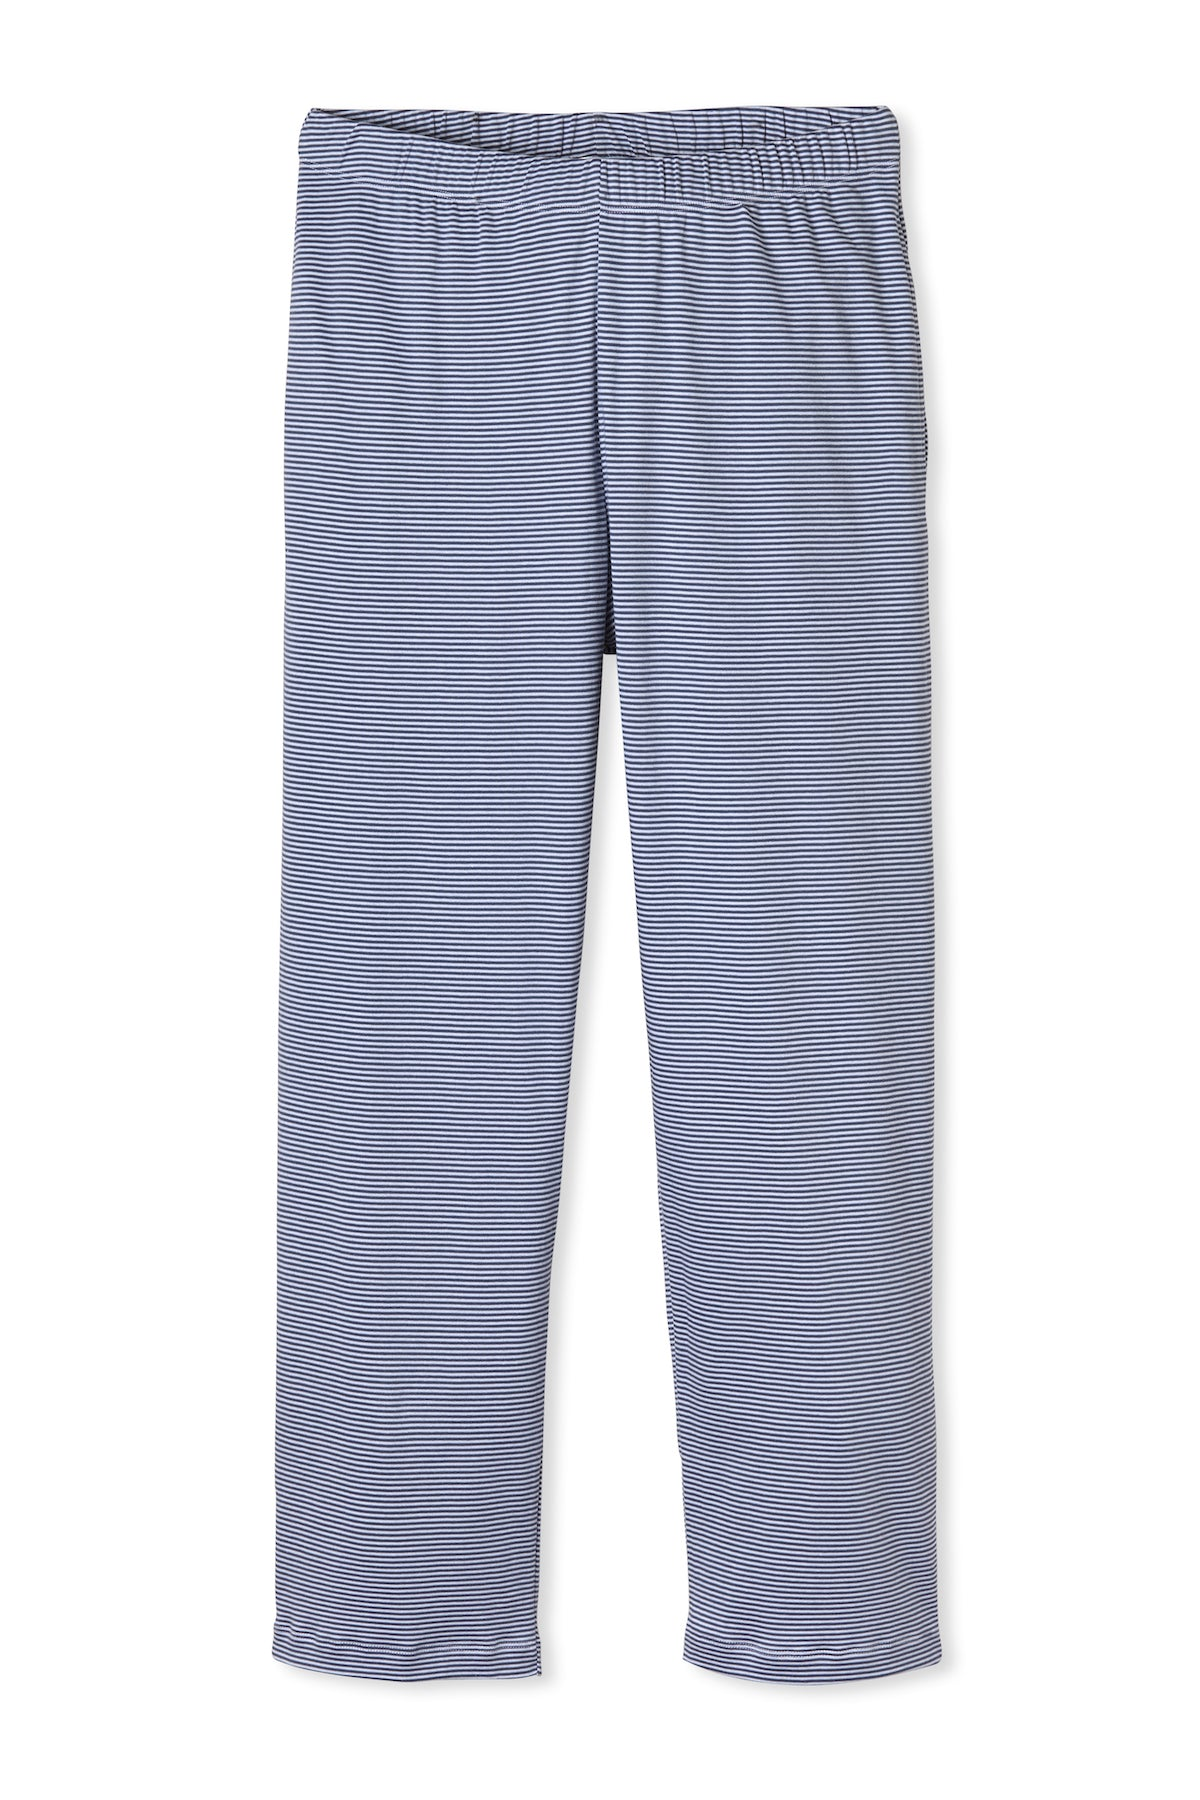 Men's Tall Pima Pajama Pants in True Navy